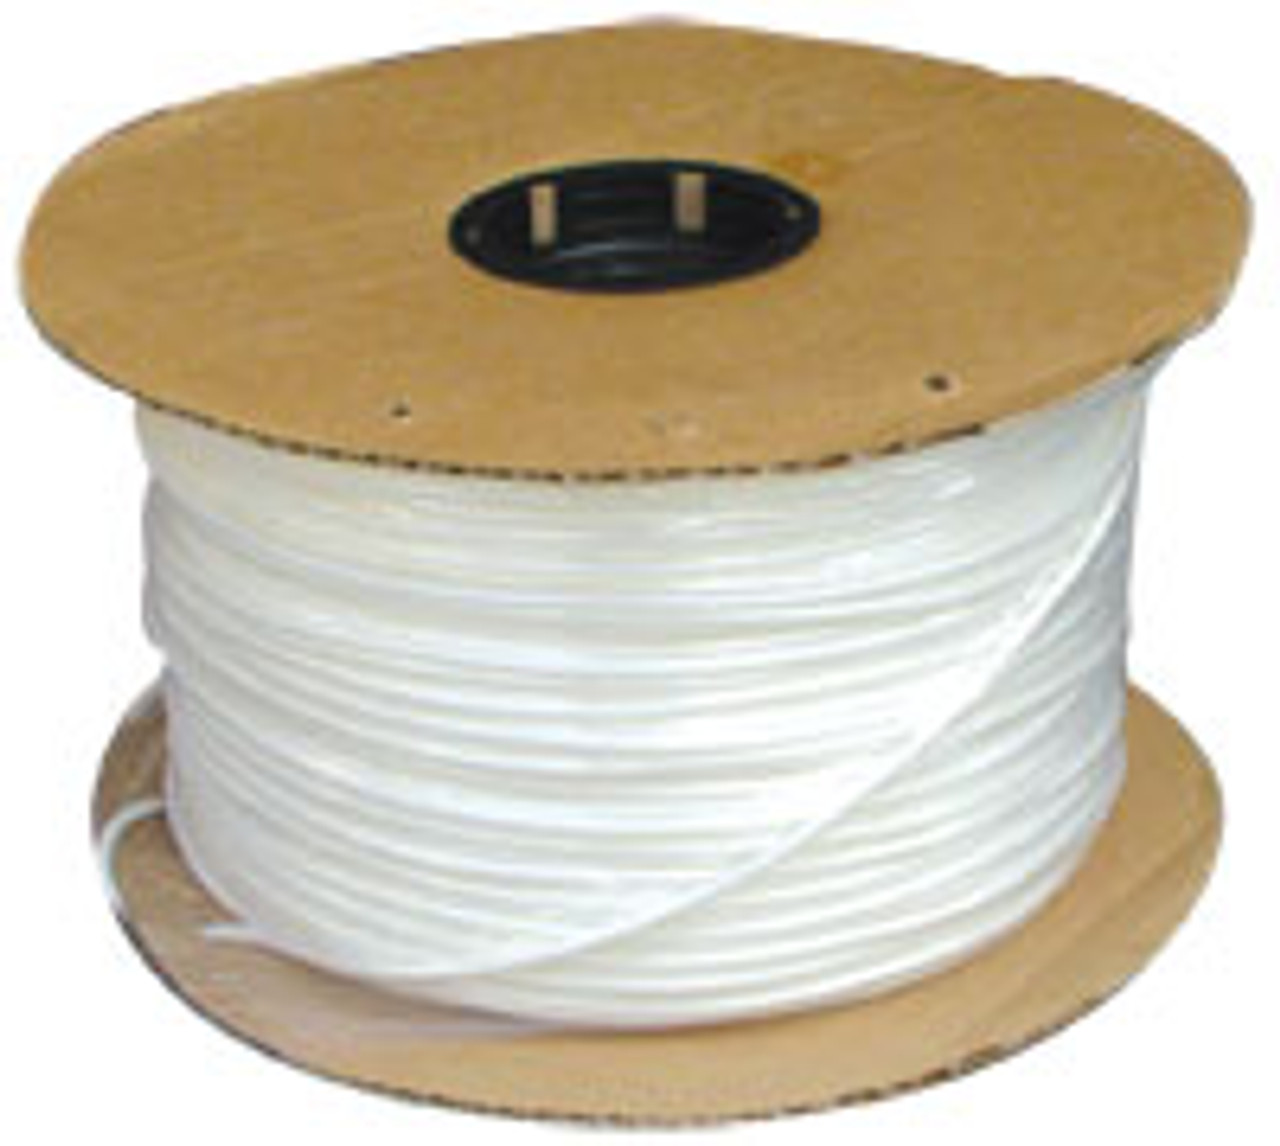 DAPA 5/32 Foam Flex Welt Cord 500 Yard Roll